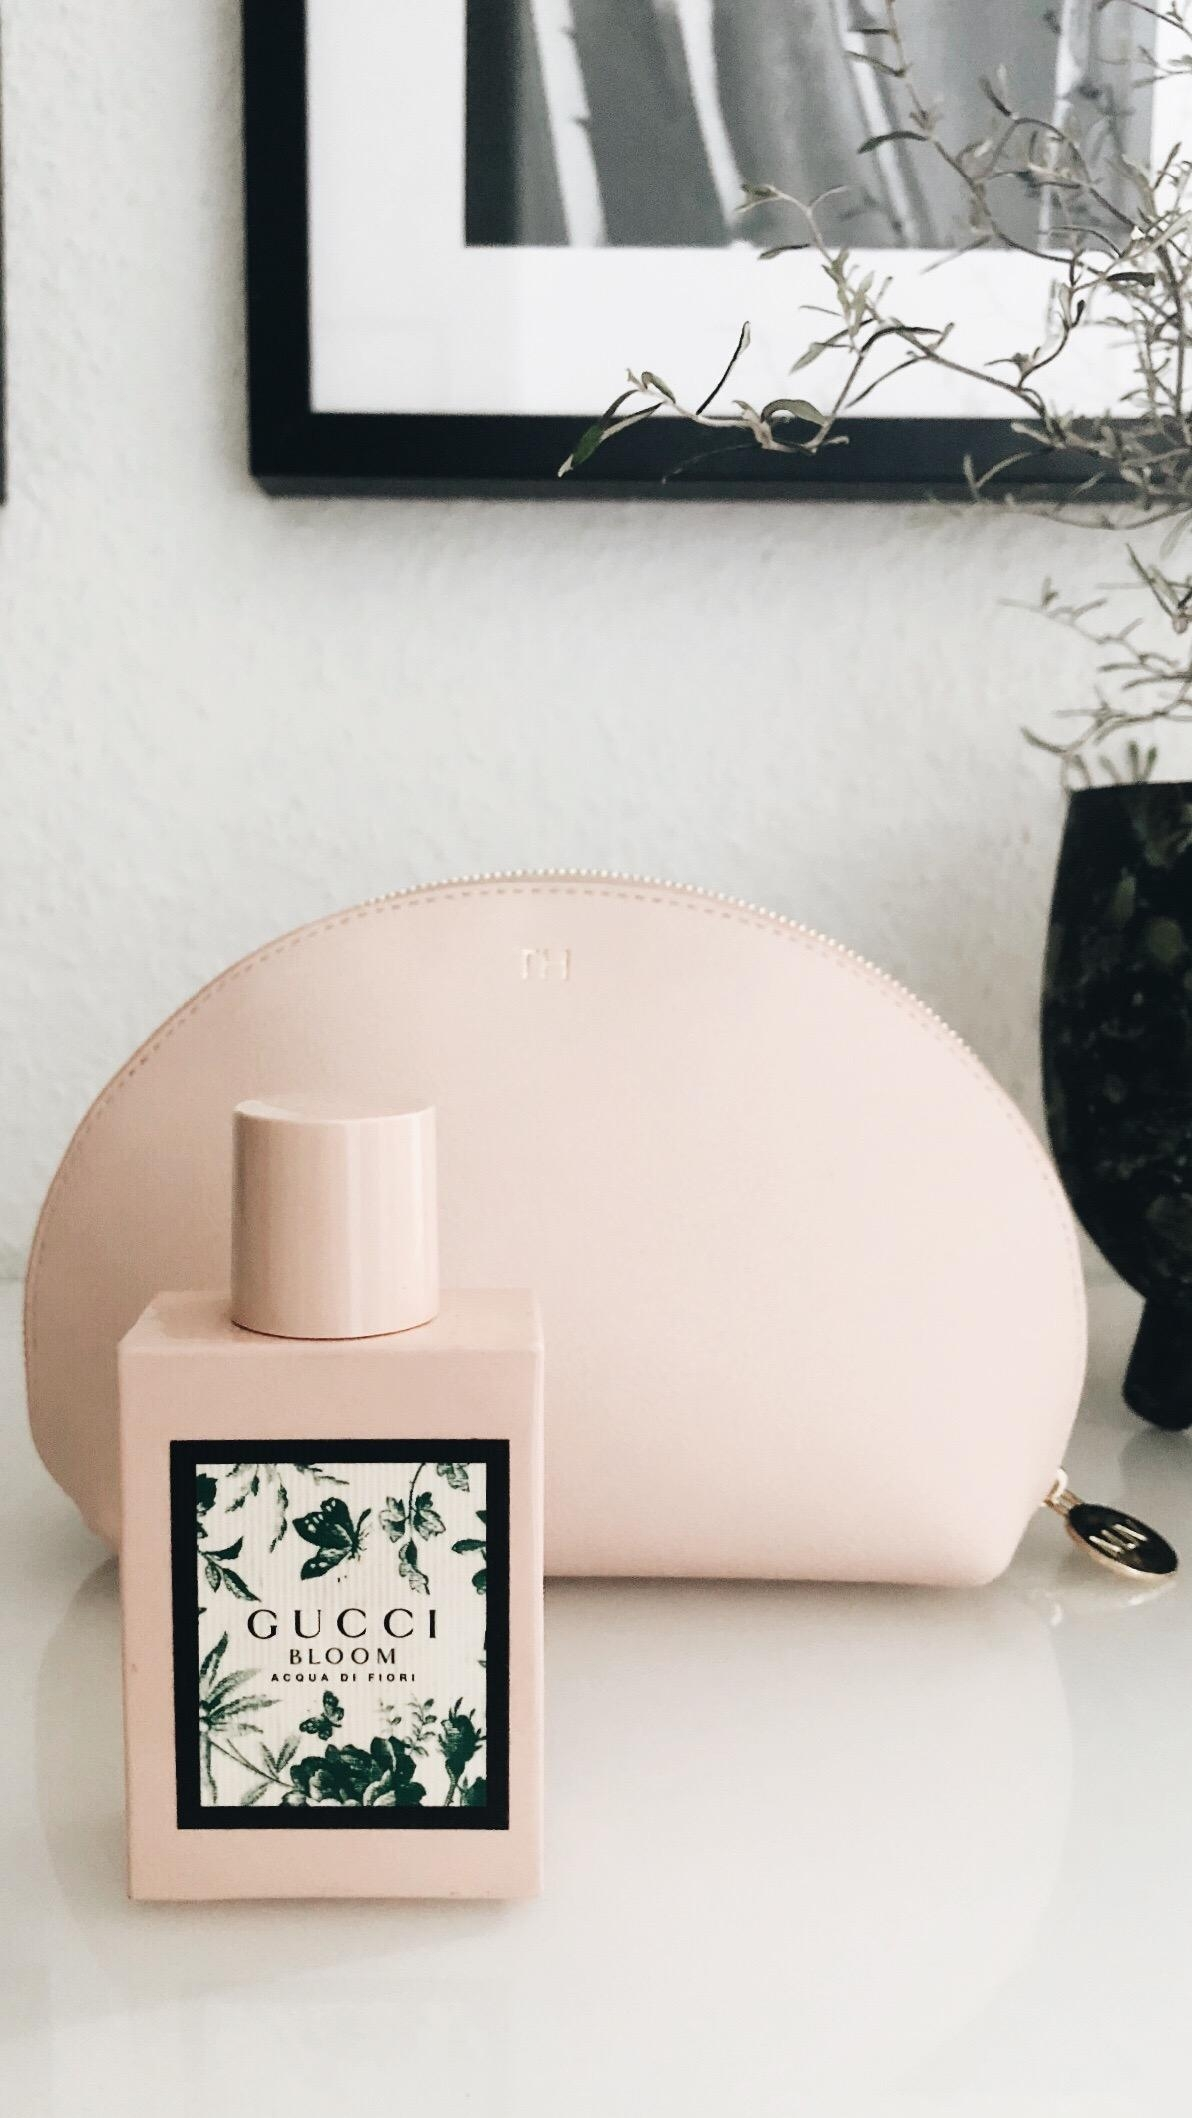 Aktuell mein #liebling #parfum #couchstyle #rose #essentials #guccibloom #majavia #cosmetics #beauty #inlove